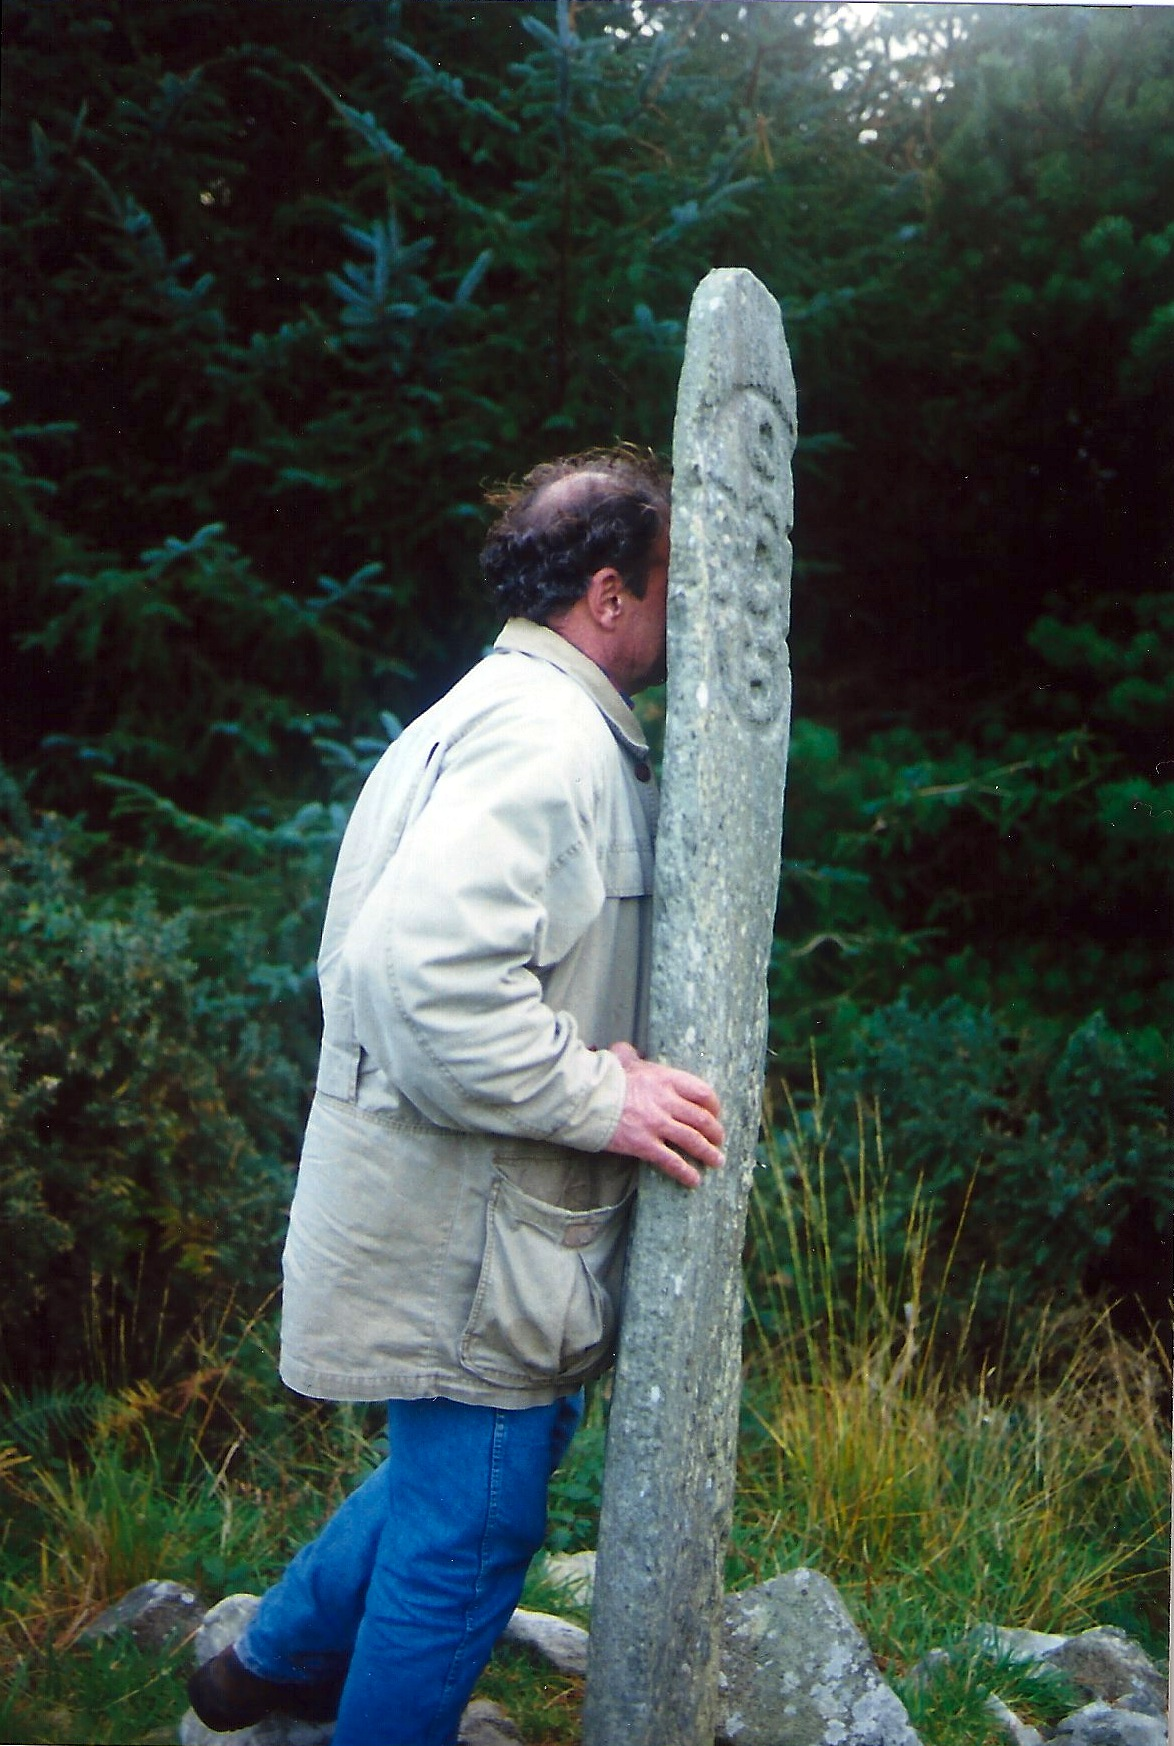 Glencolumbkille stone of Gathering